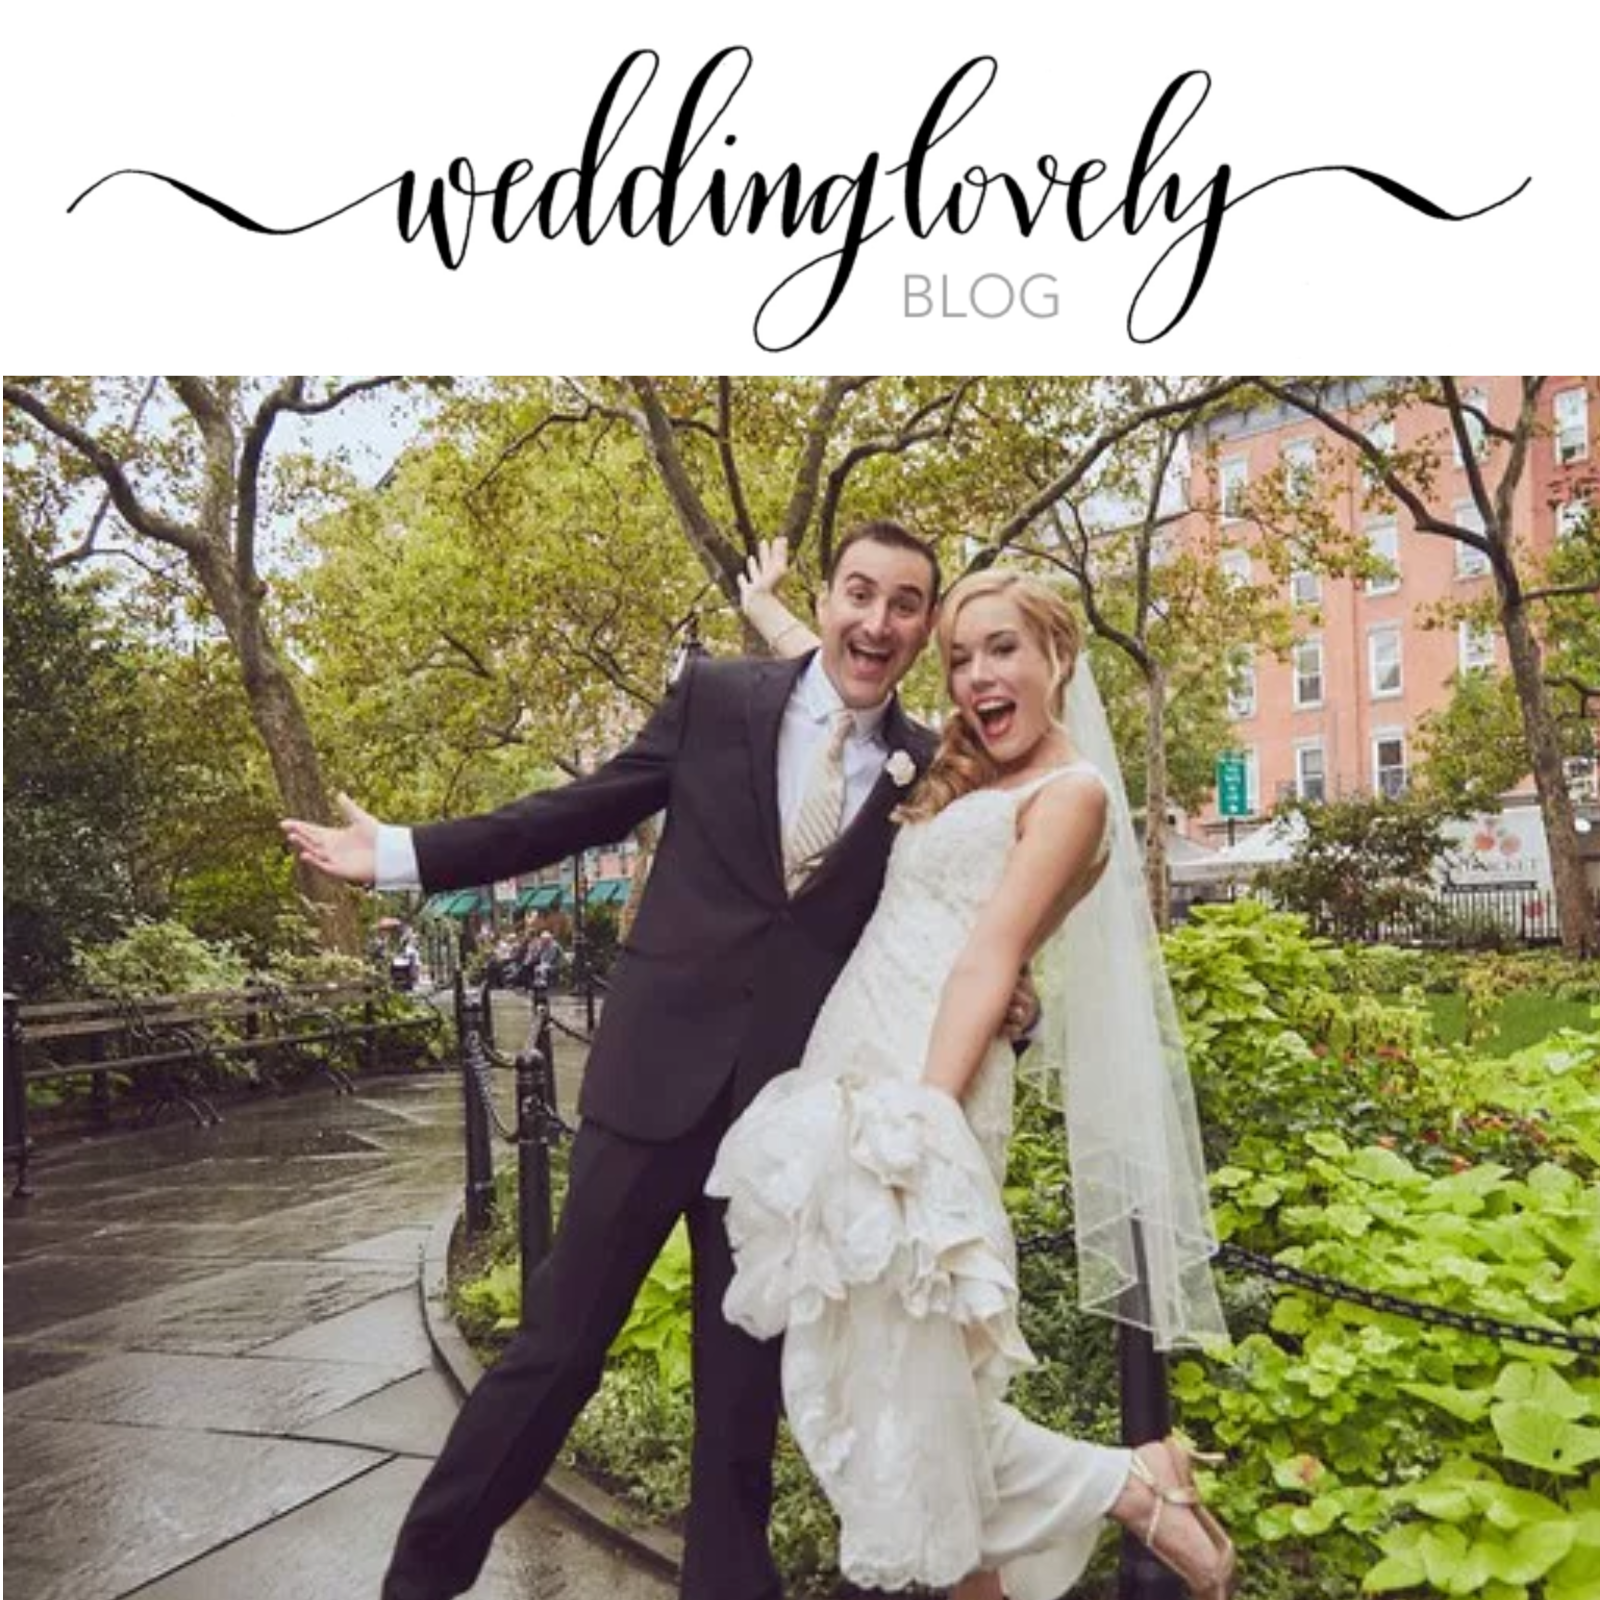 We're Featured in WeddingLovely!